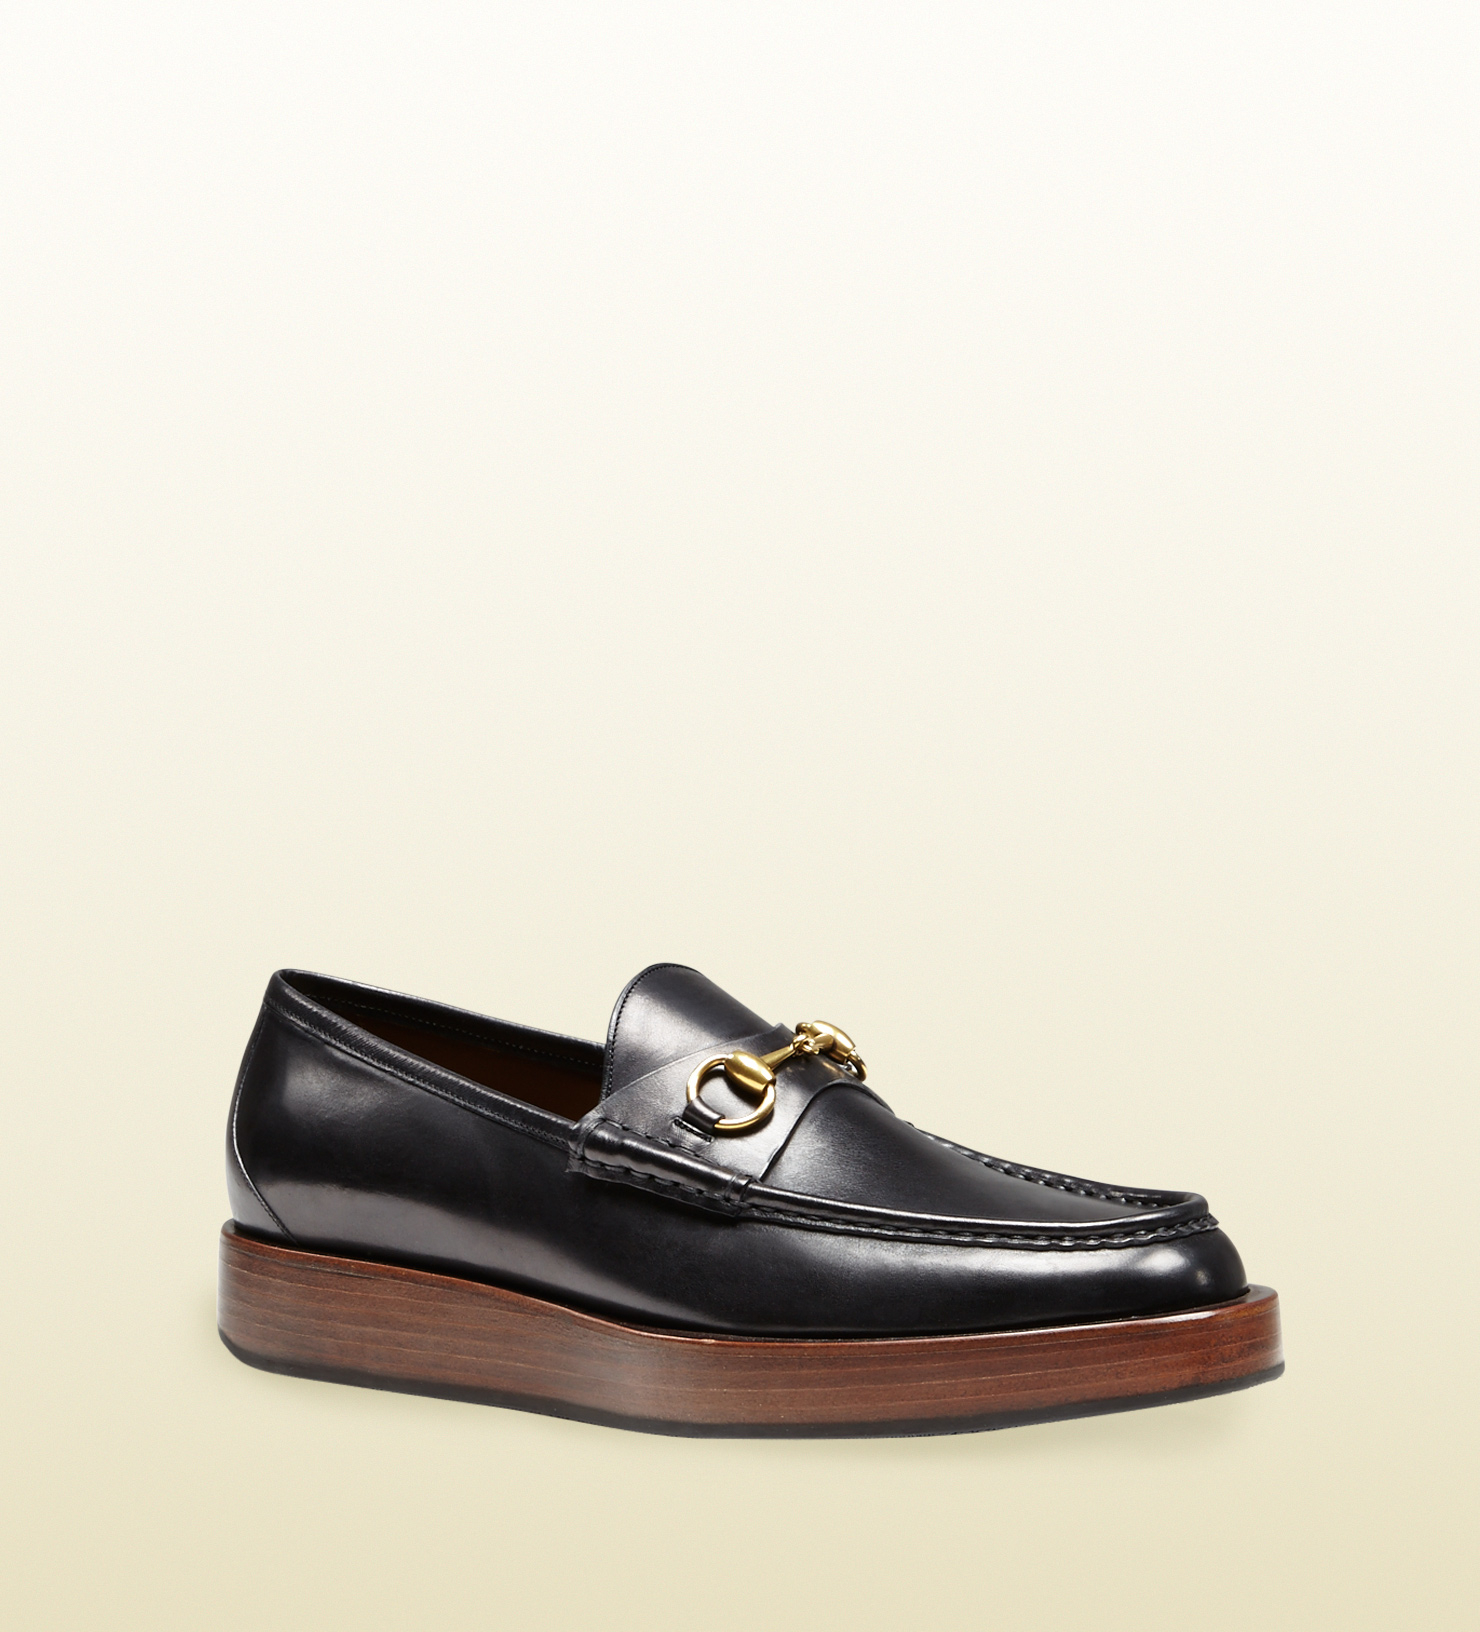 29ec57f99bb2 Lyst - Gucci Shaded Leather Platform Horsebit Loafer in Black for Men